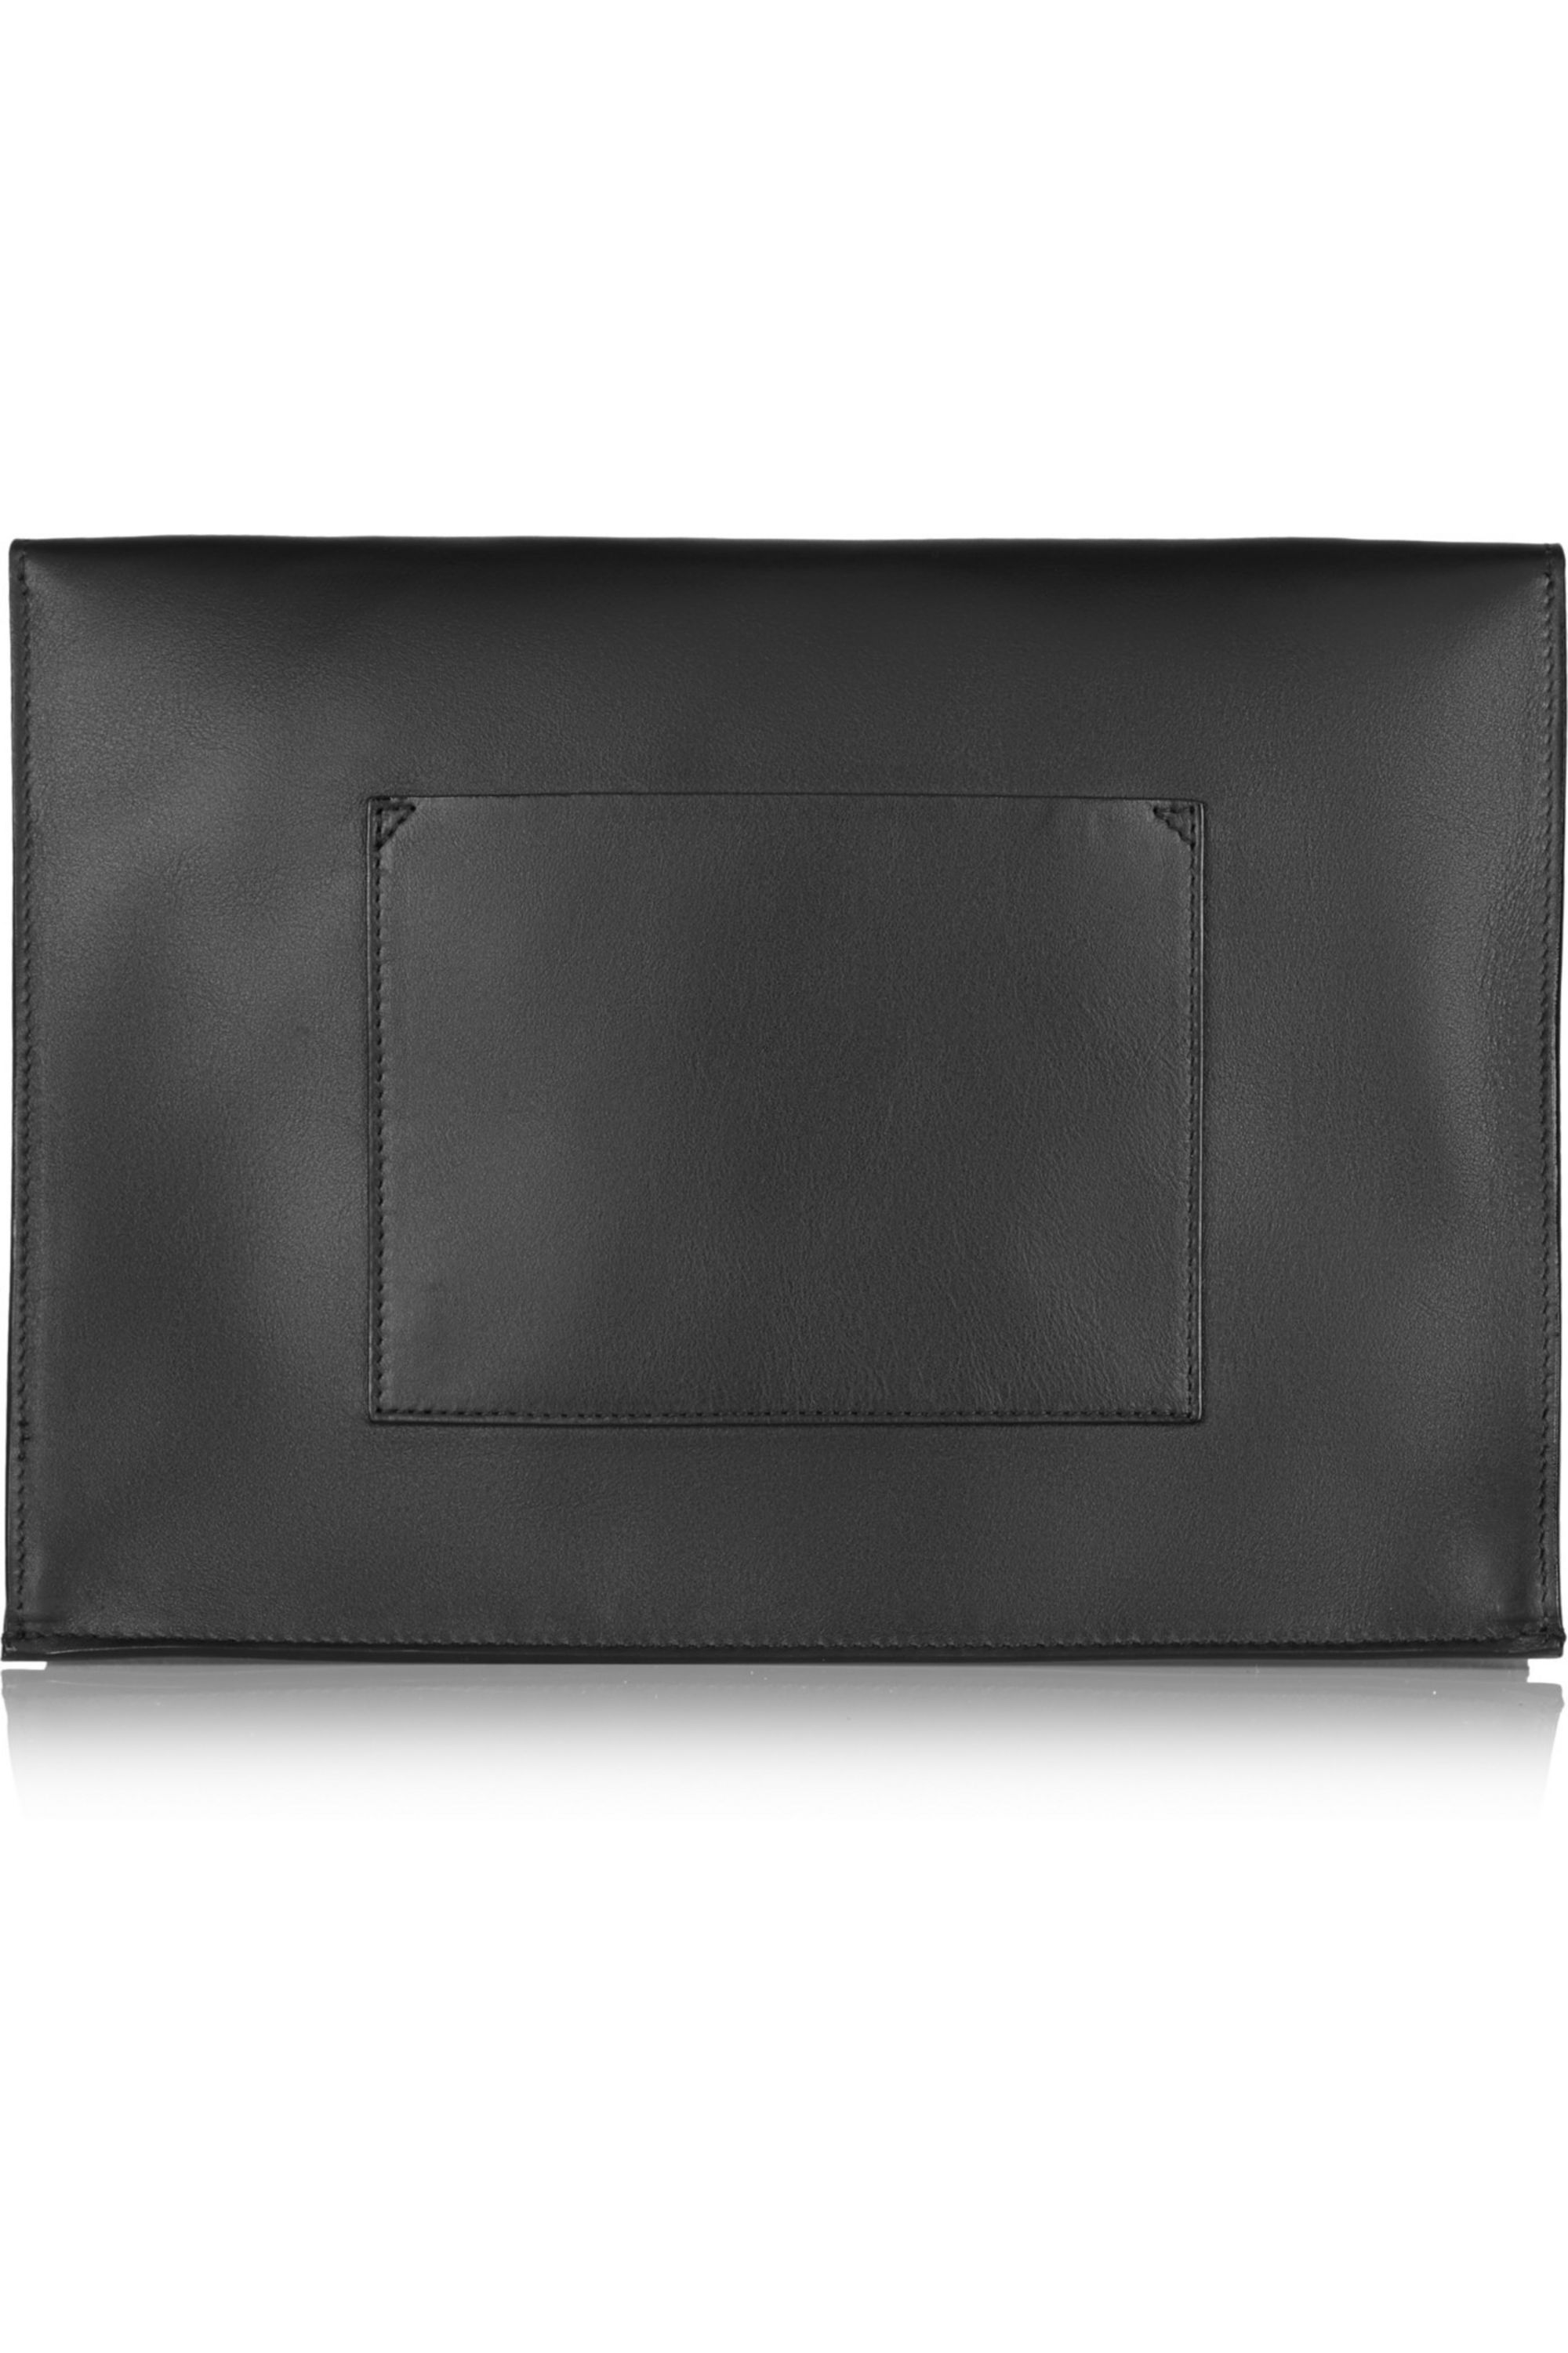 Proenza Schouler Lunch Bag große Leder-Clutch